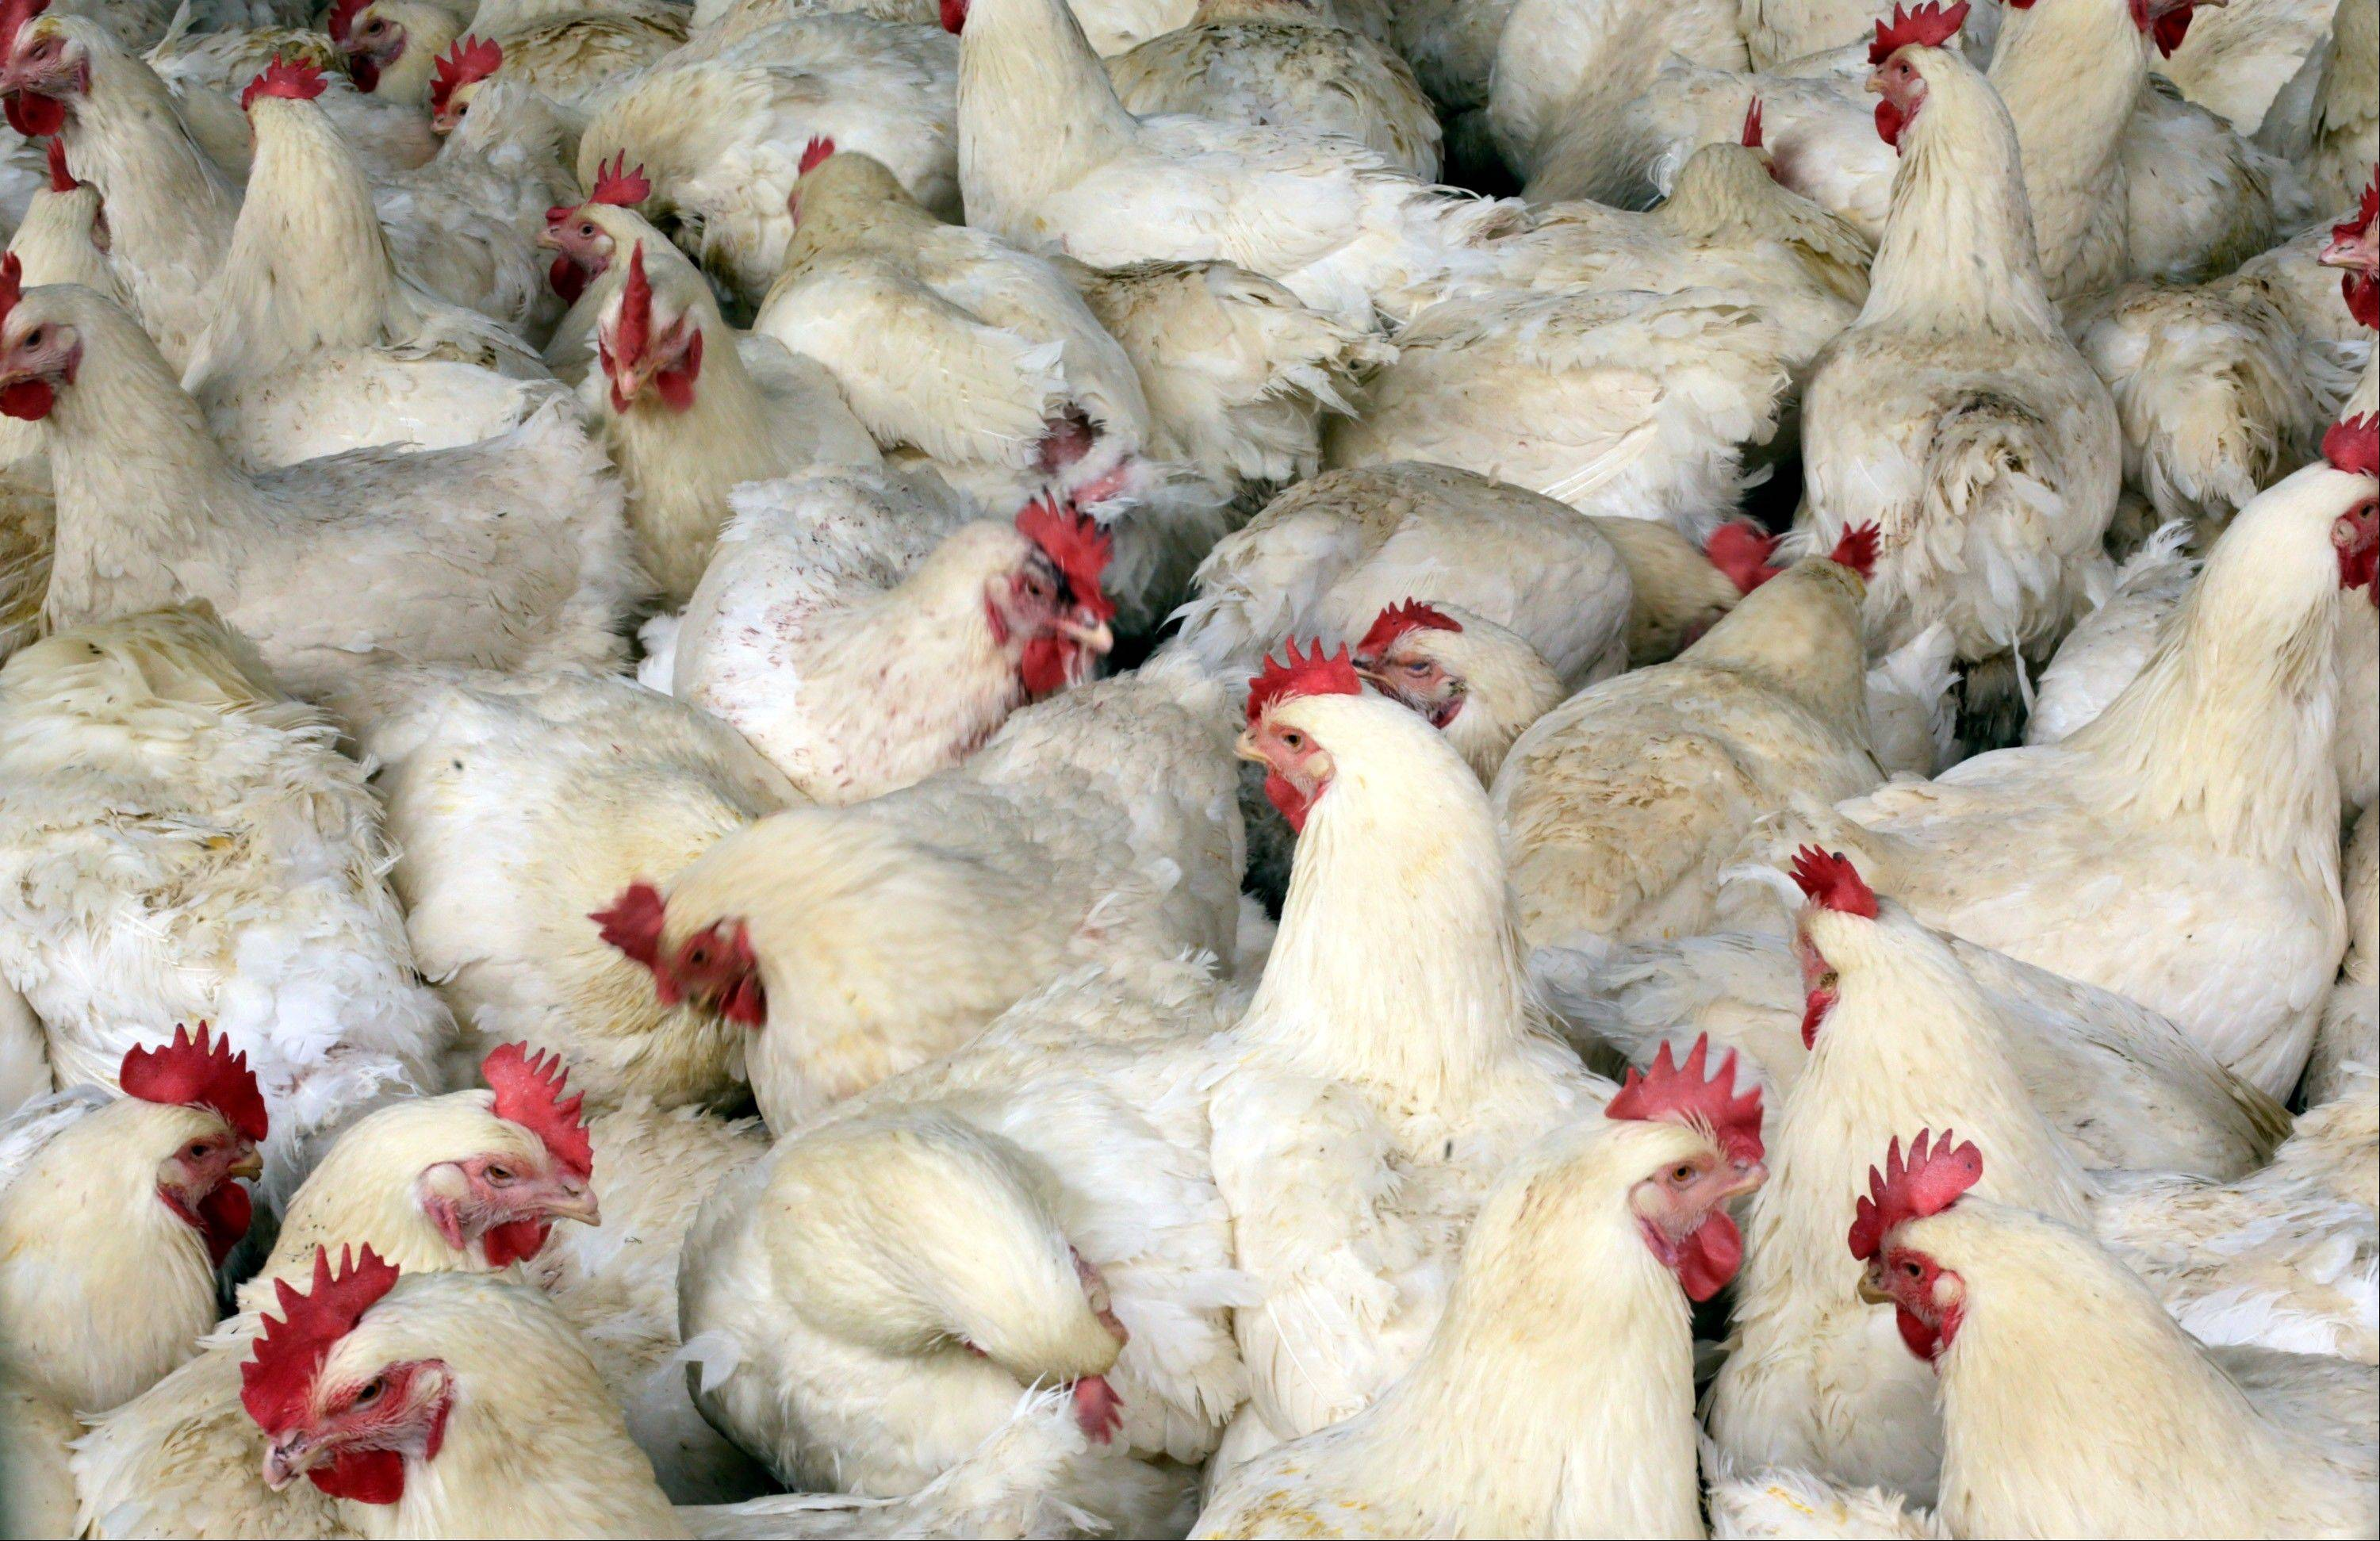 Associated Press/April 3, 2013 Chickens at a chicken farm on the outskirts of Shanghai, China.